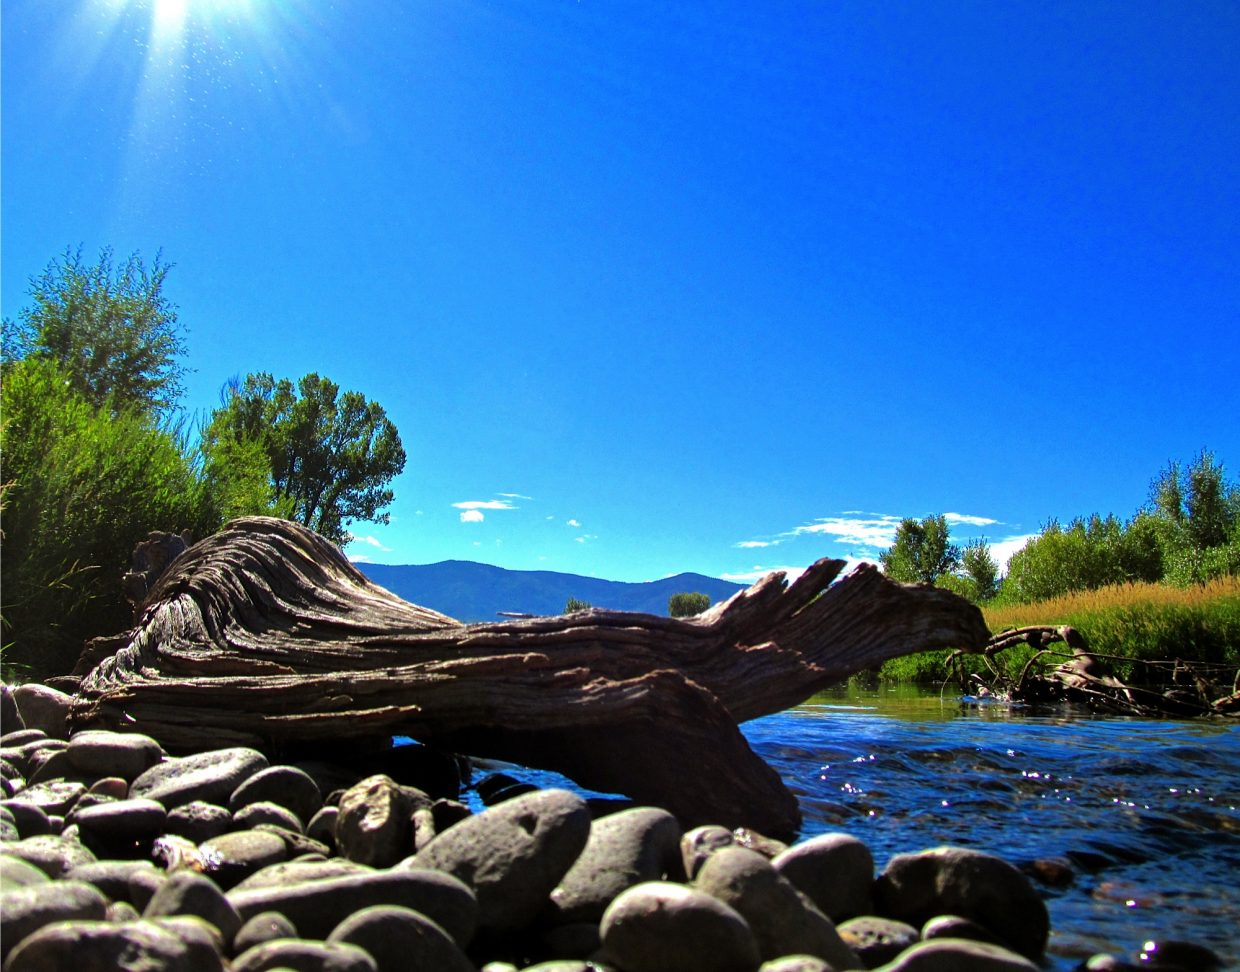 Morning on the Yampa. Submitted by: Ryan Lohan